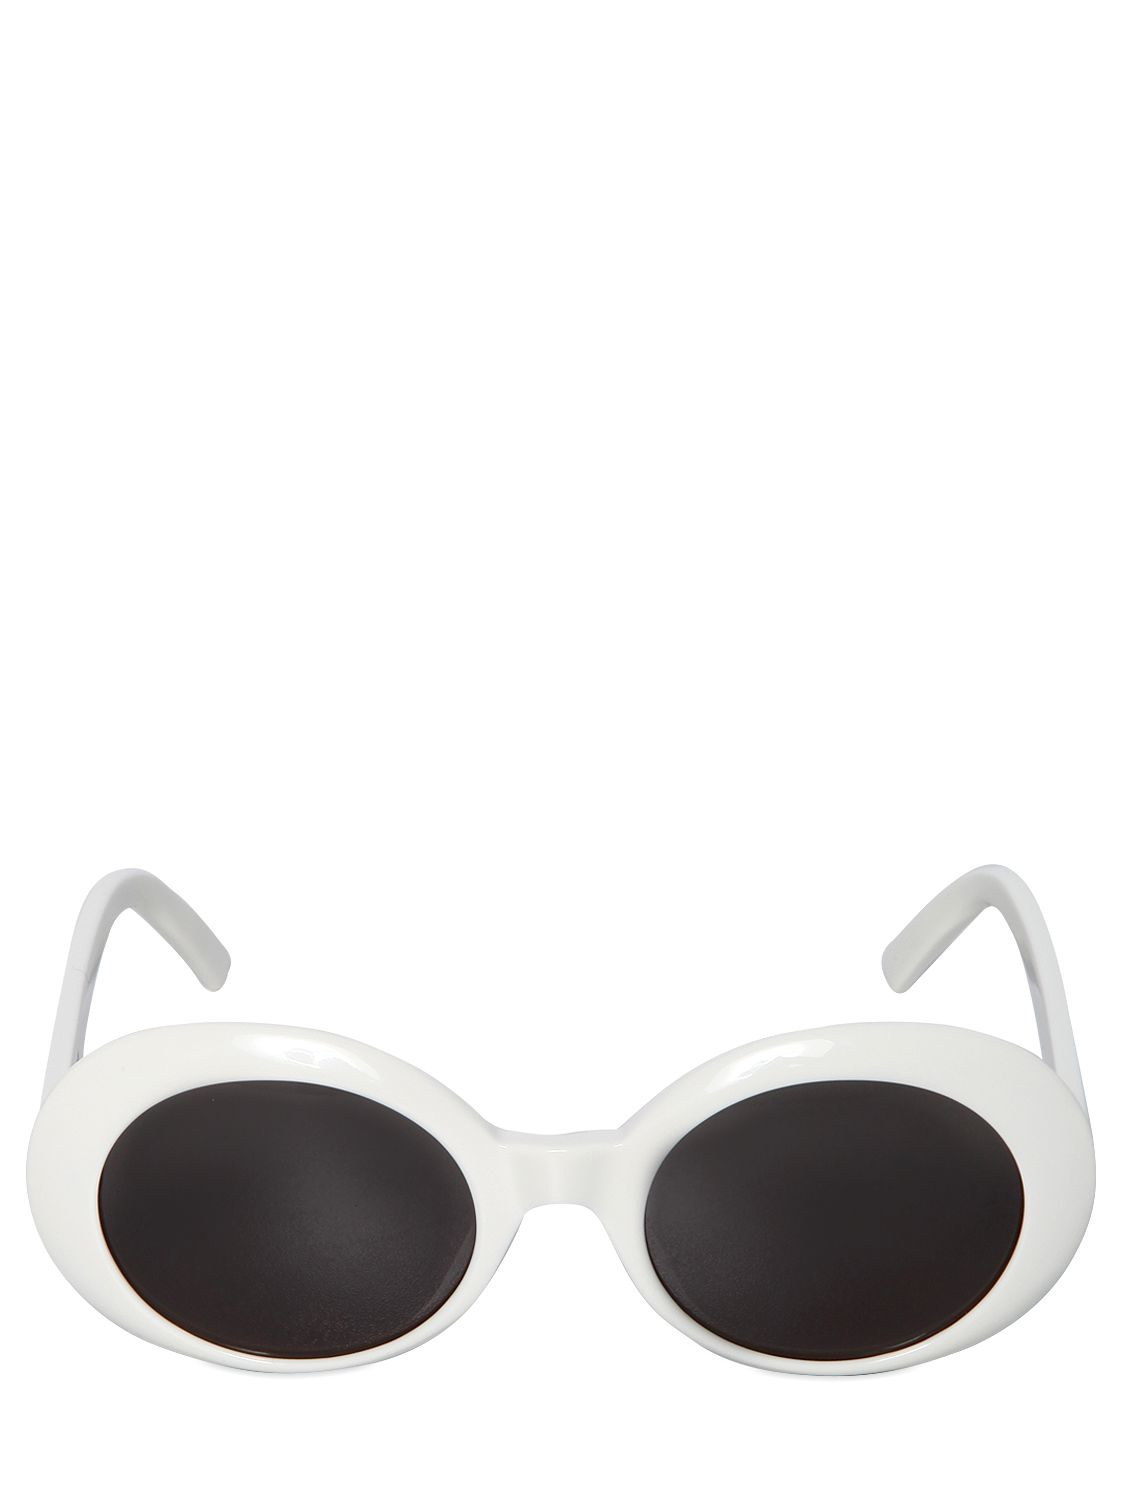 white sunglasses  Round White Sunglasses - The Sunglasses